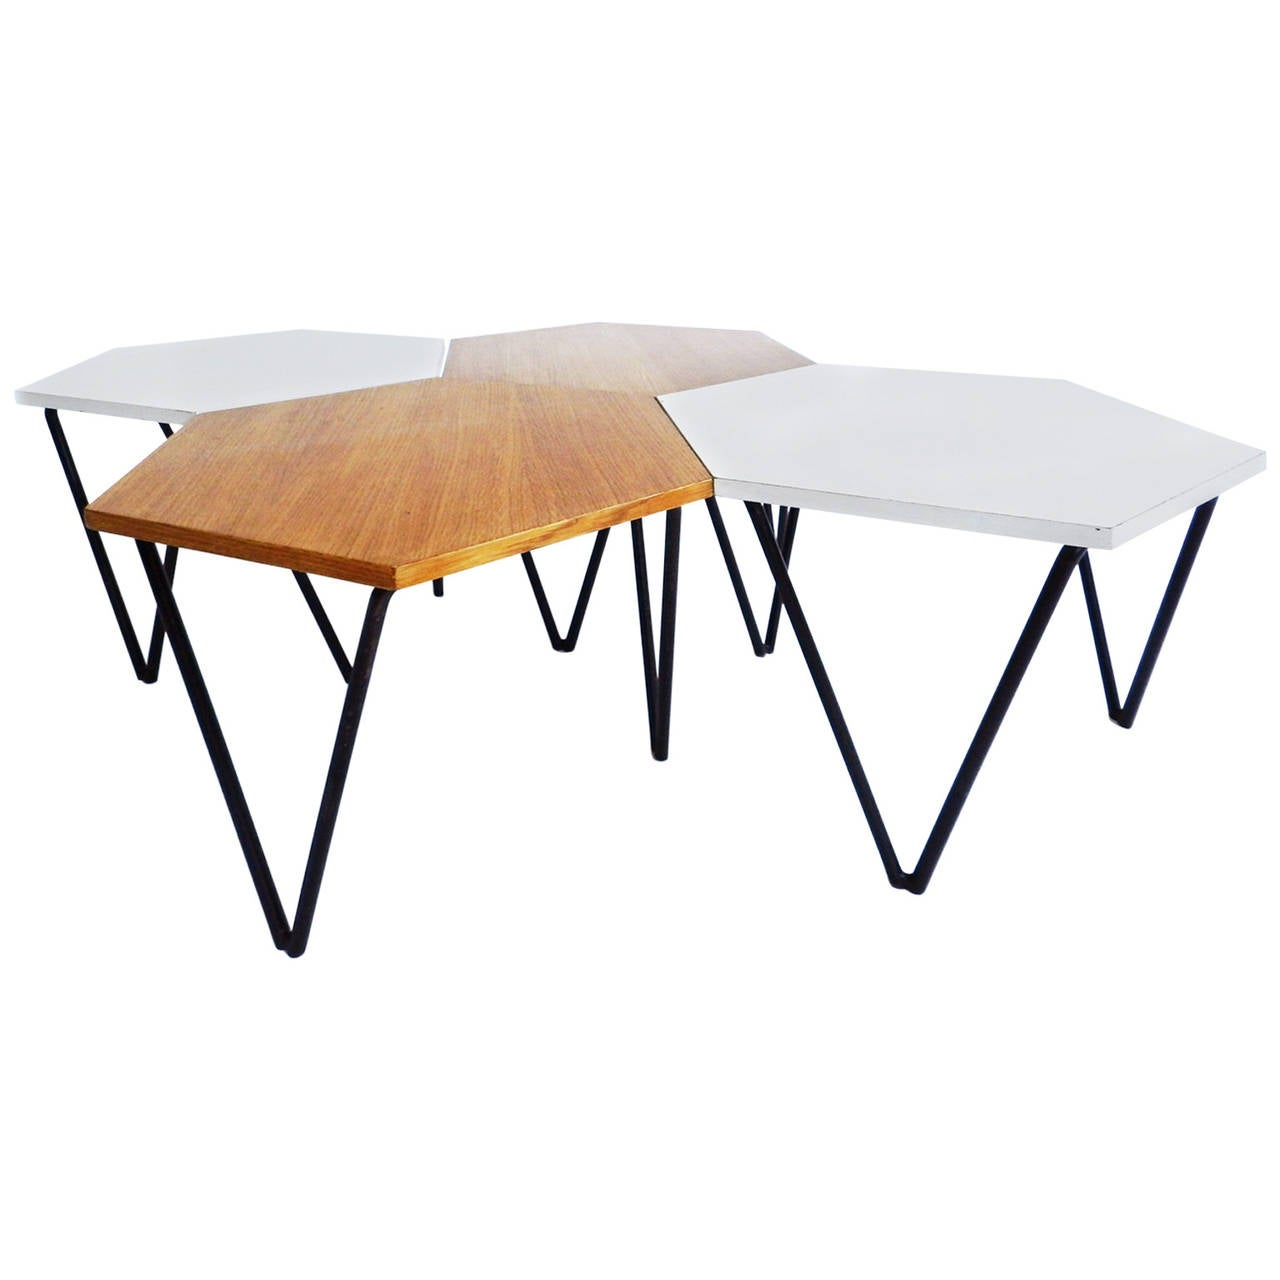 Set Of 4 Gio Ponti Laminated And Wood Modular Coffee Tables For Isa At 1stdibs